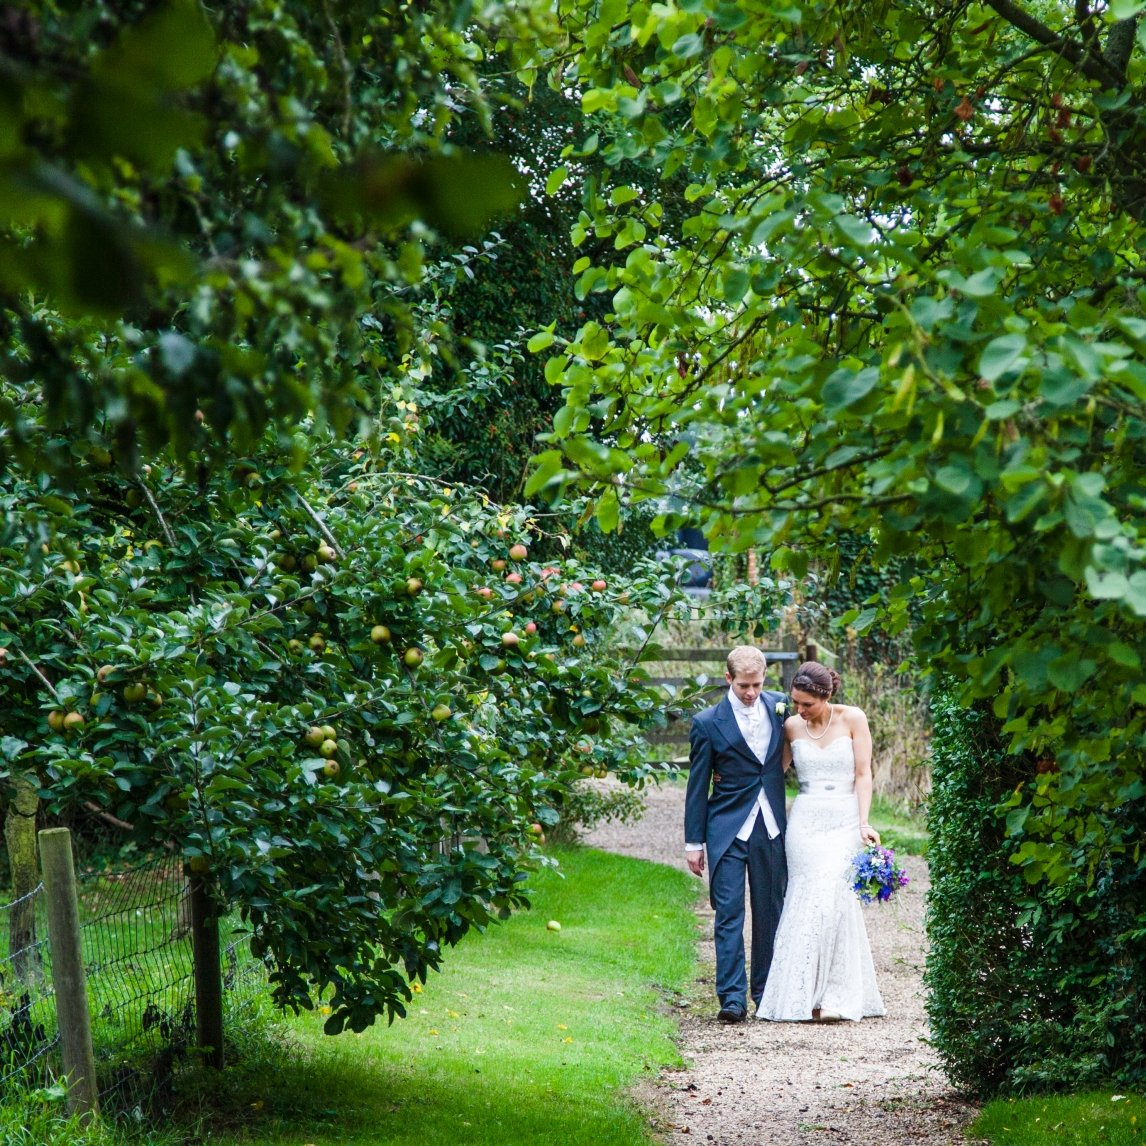 Weddings at